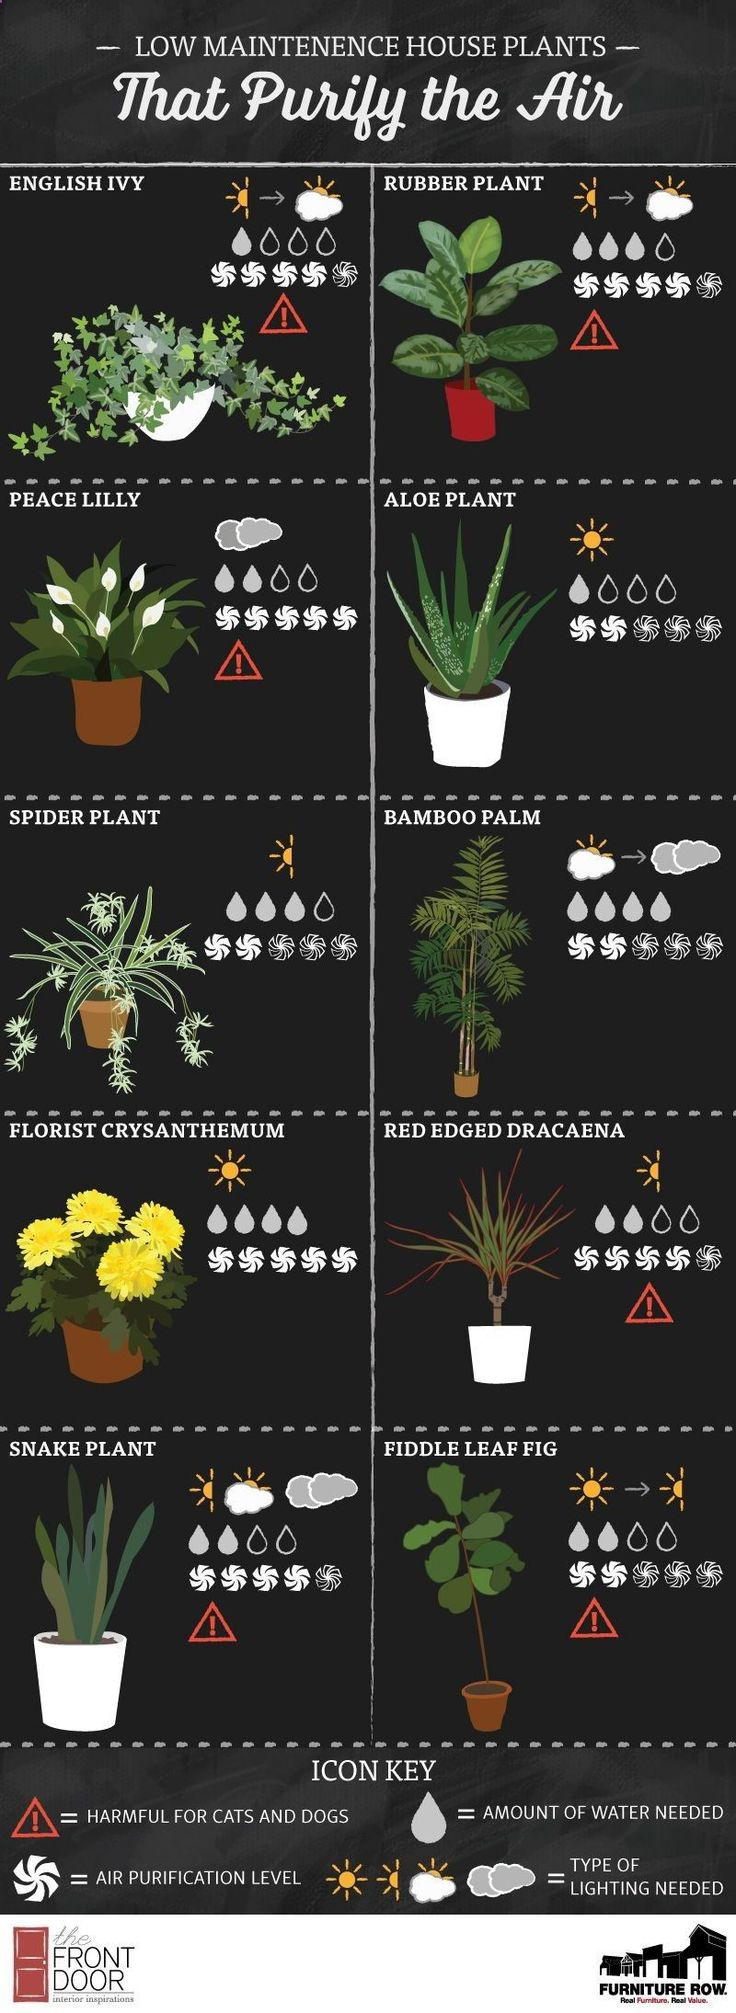 Terrace Garden - INFOGRAPHIC: Low Maintenance House Plants That Purify the Air This time, we will know how to decorate your balcony and your garden easily with plants #houseplantsairpurifying